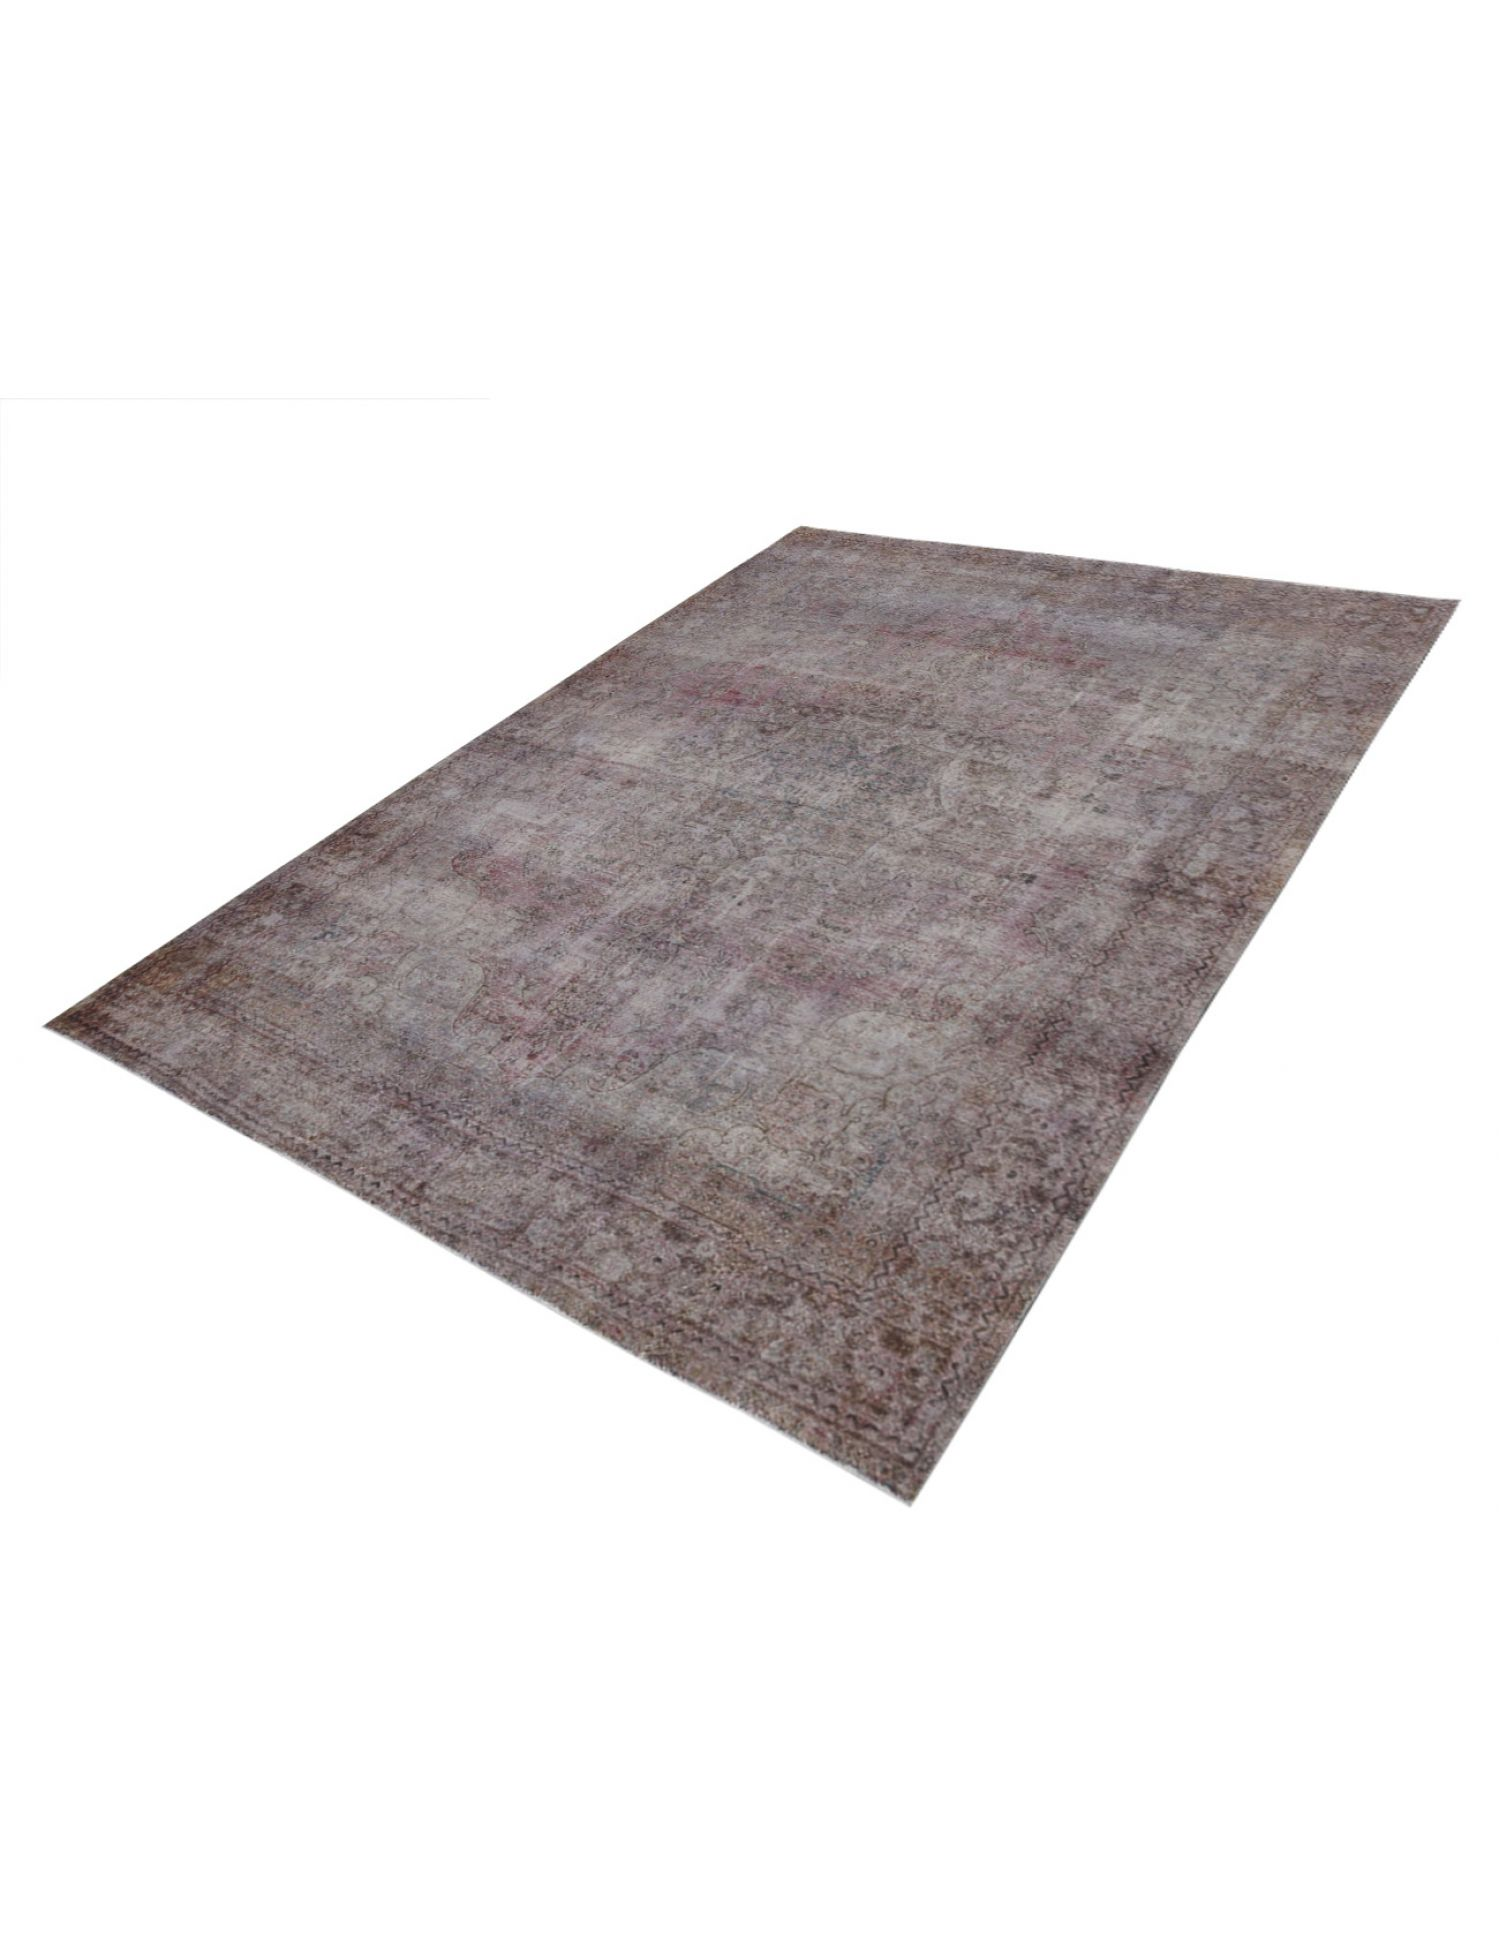 Vintage Carpet  grey <br/>356 x 272 cm